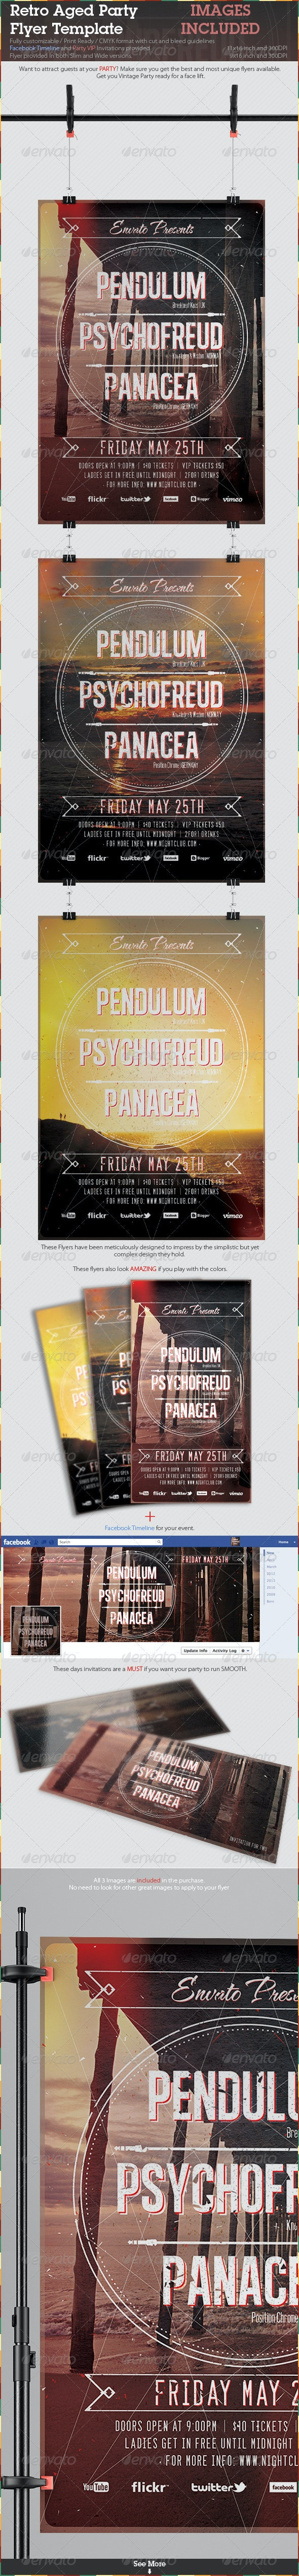 Retro Aged Party Flyer Template - Clubs & Parties Events